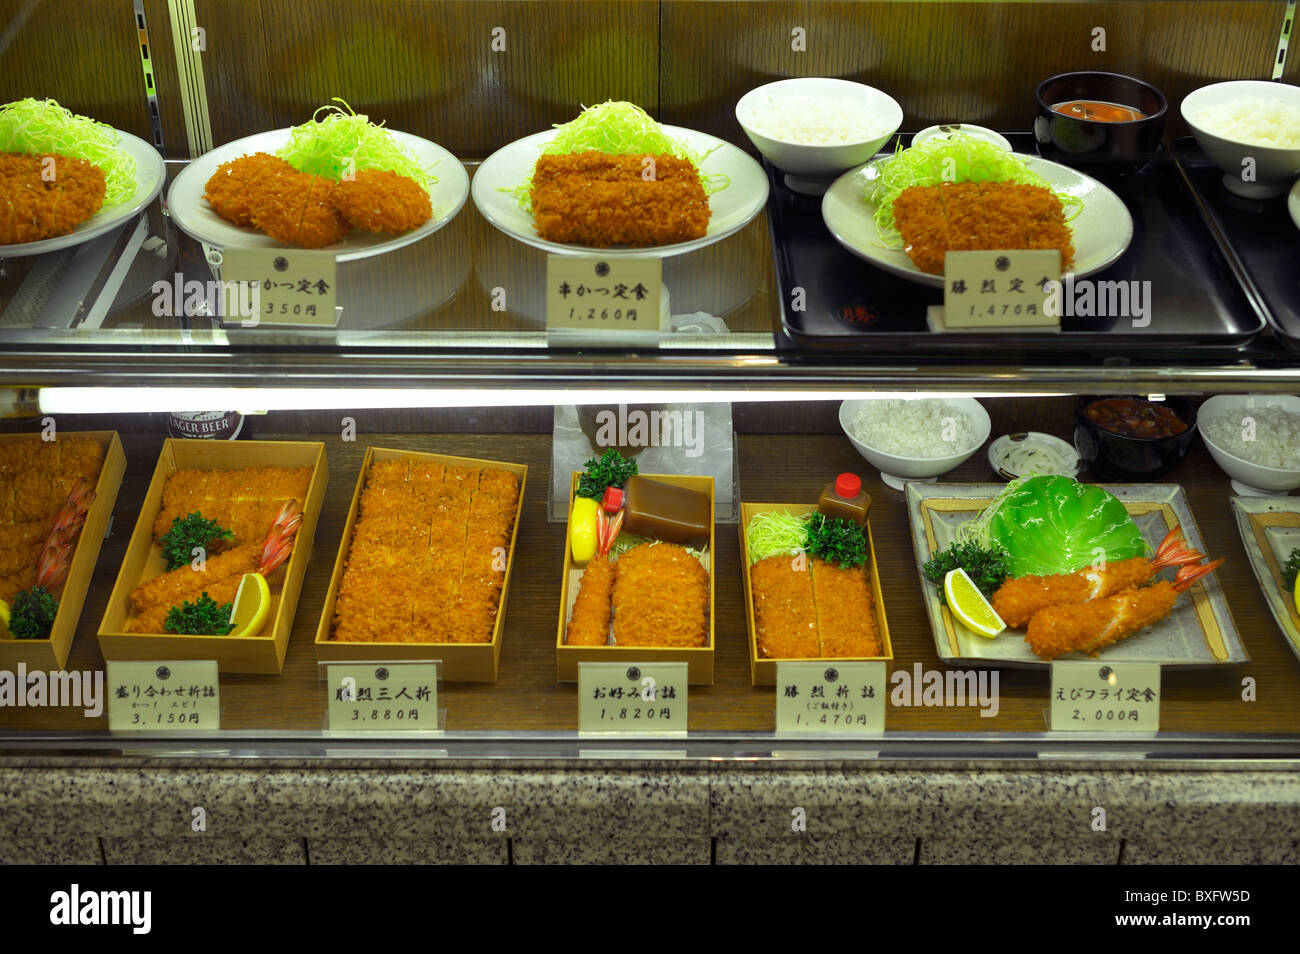 Japanese Deep Fried Dishes on display at a restaurant, Yokohama, Japan JP - Stock Image